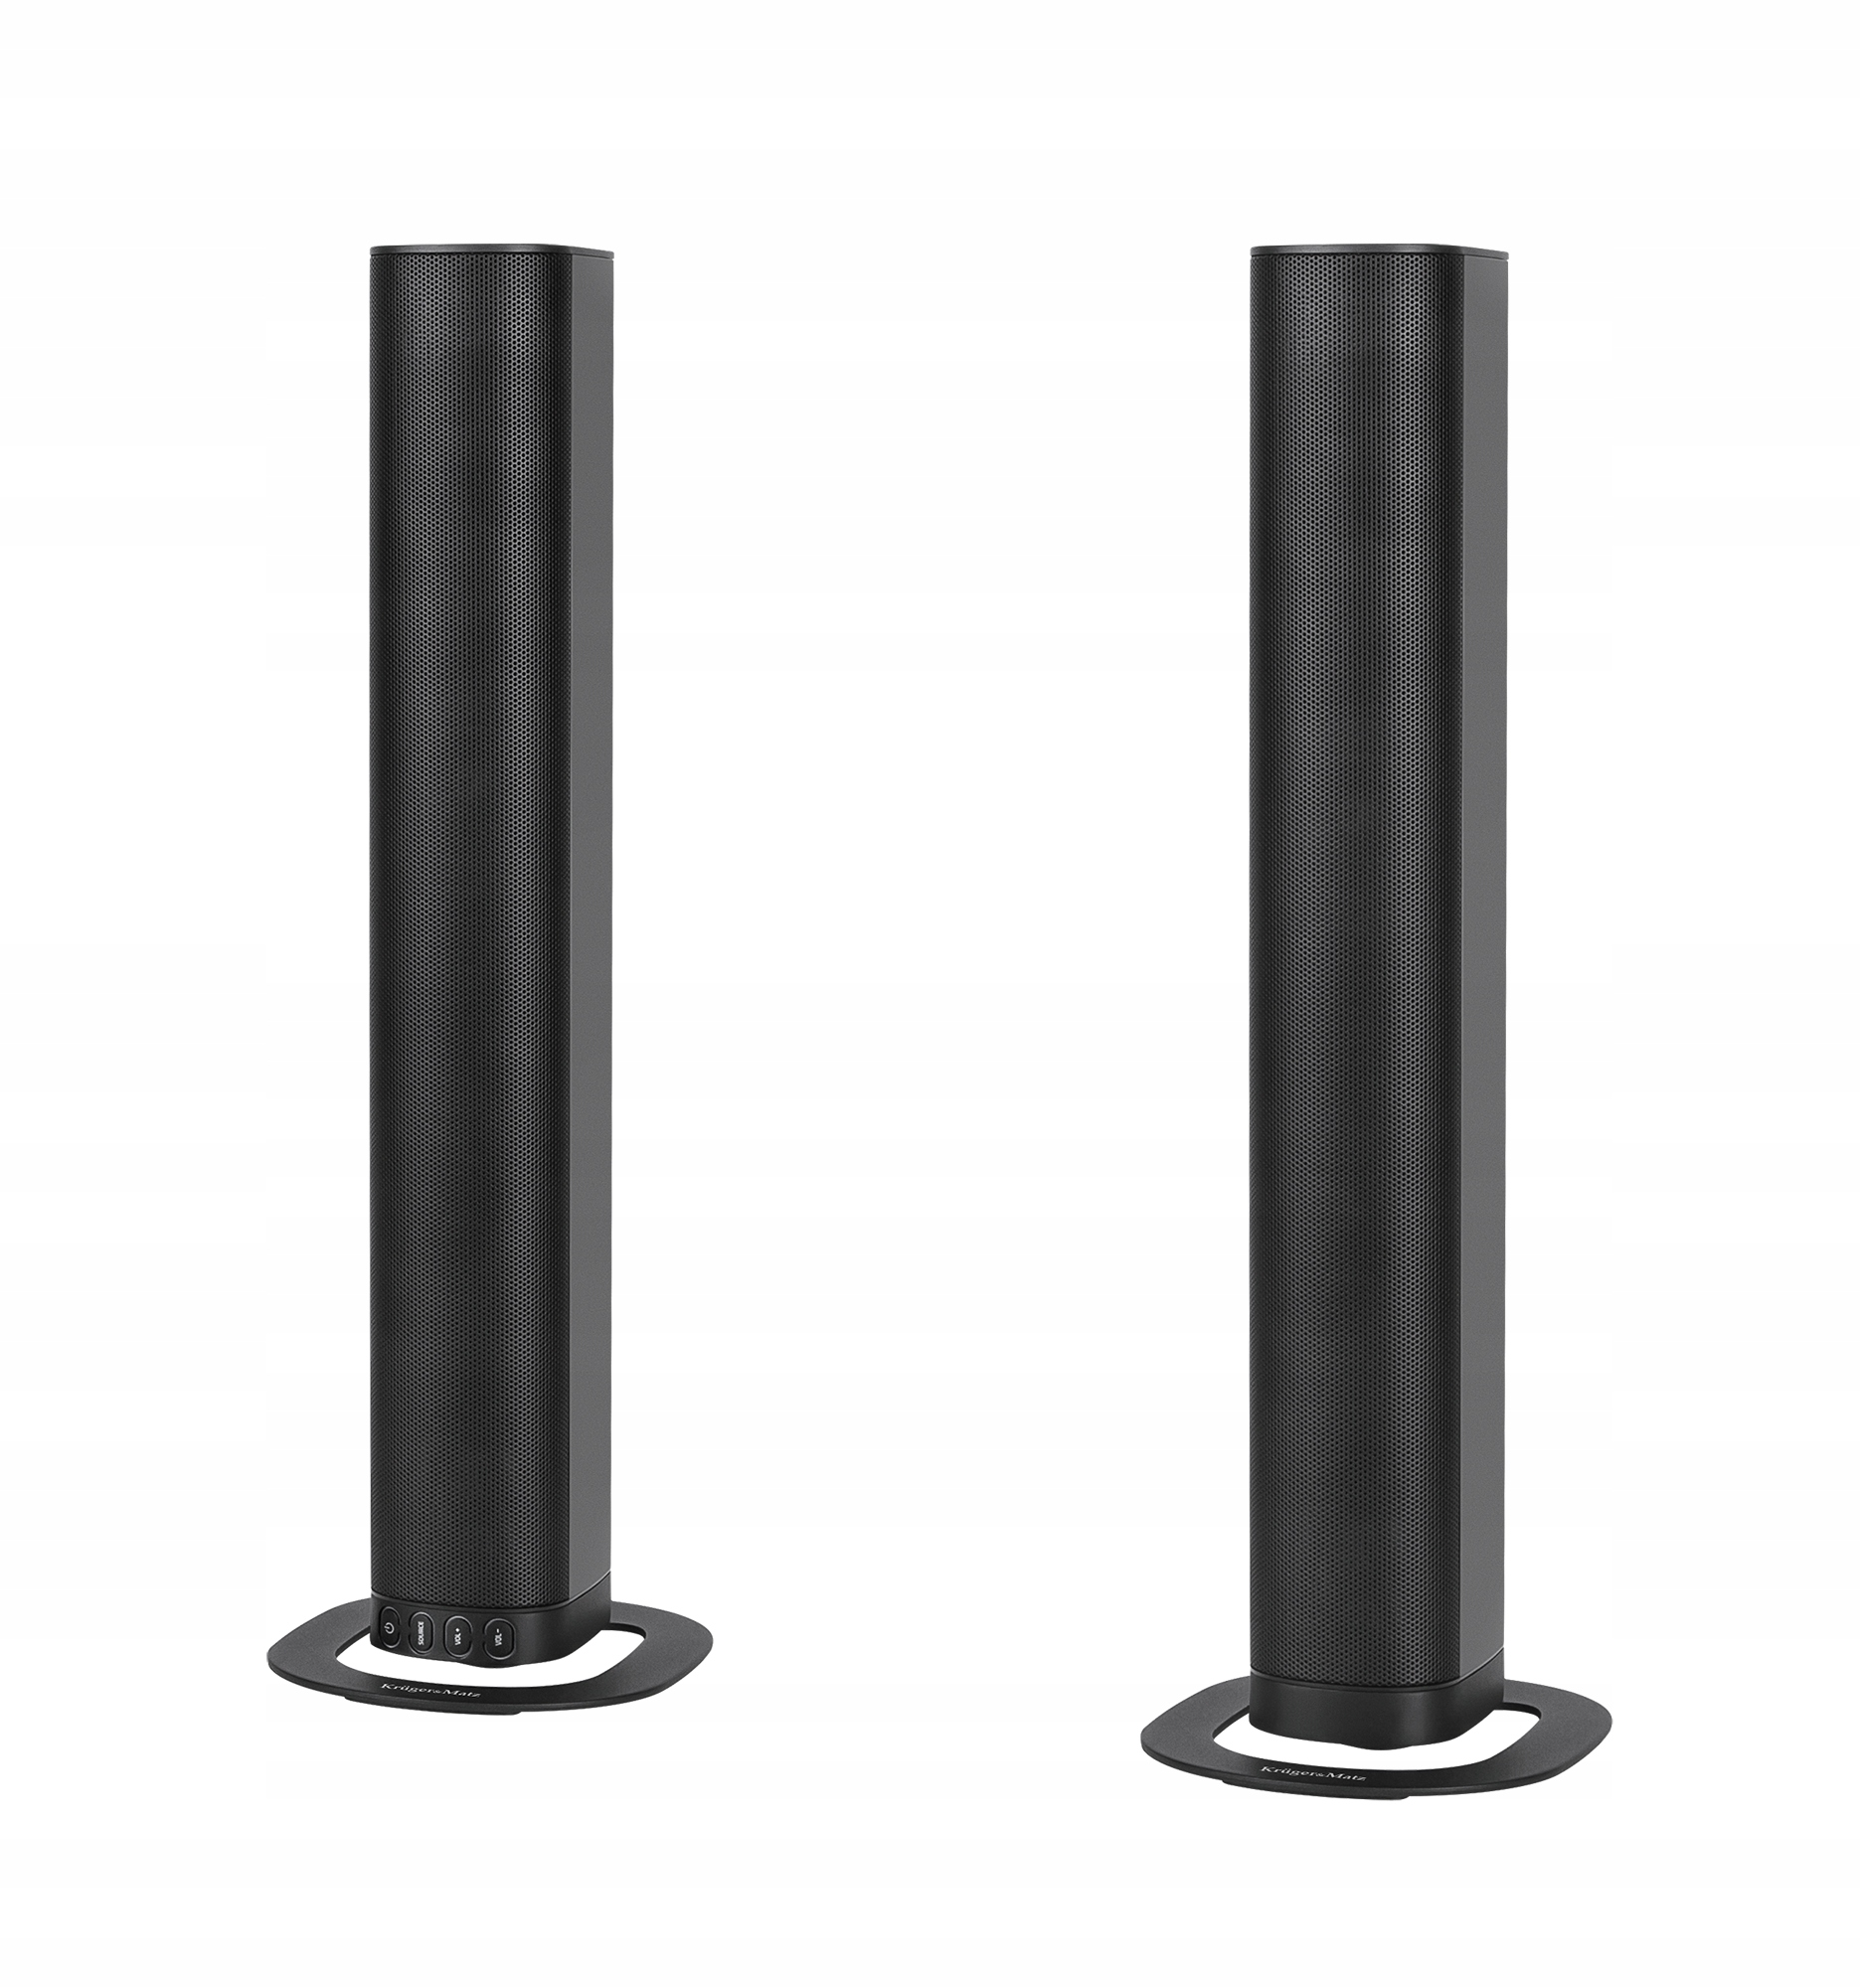 Soundbar Kruger & Matz Ghost set 2.0